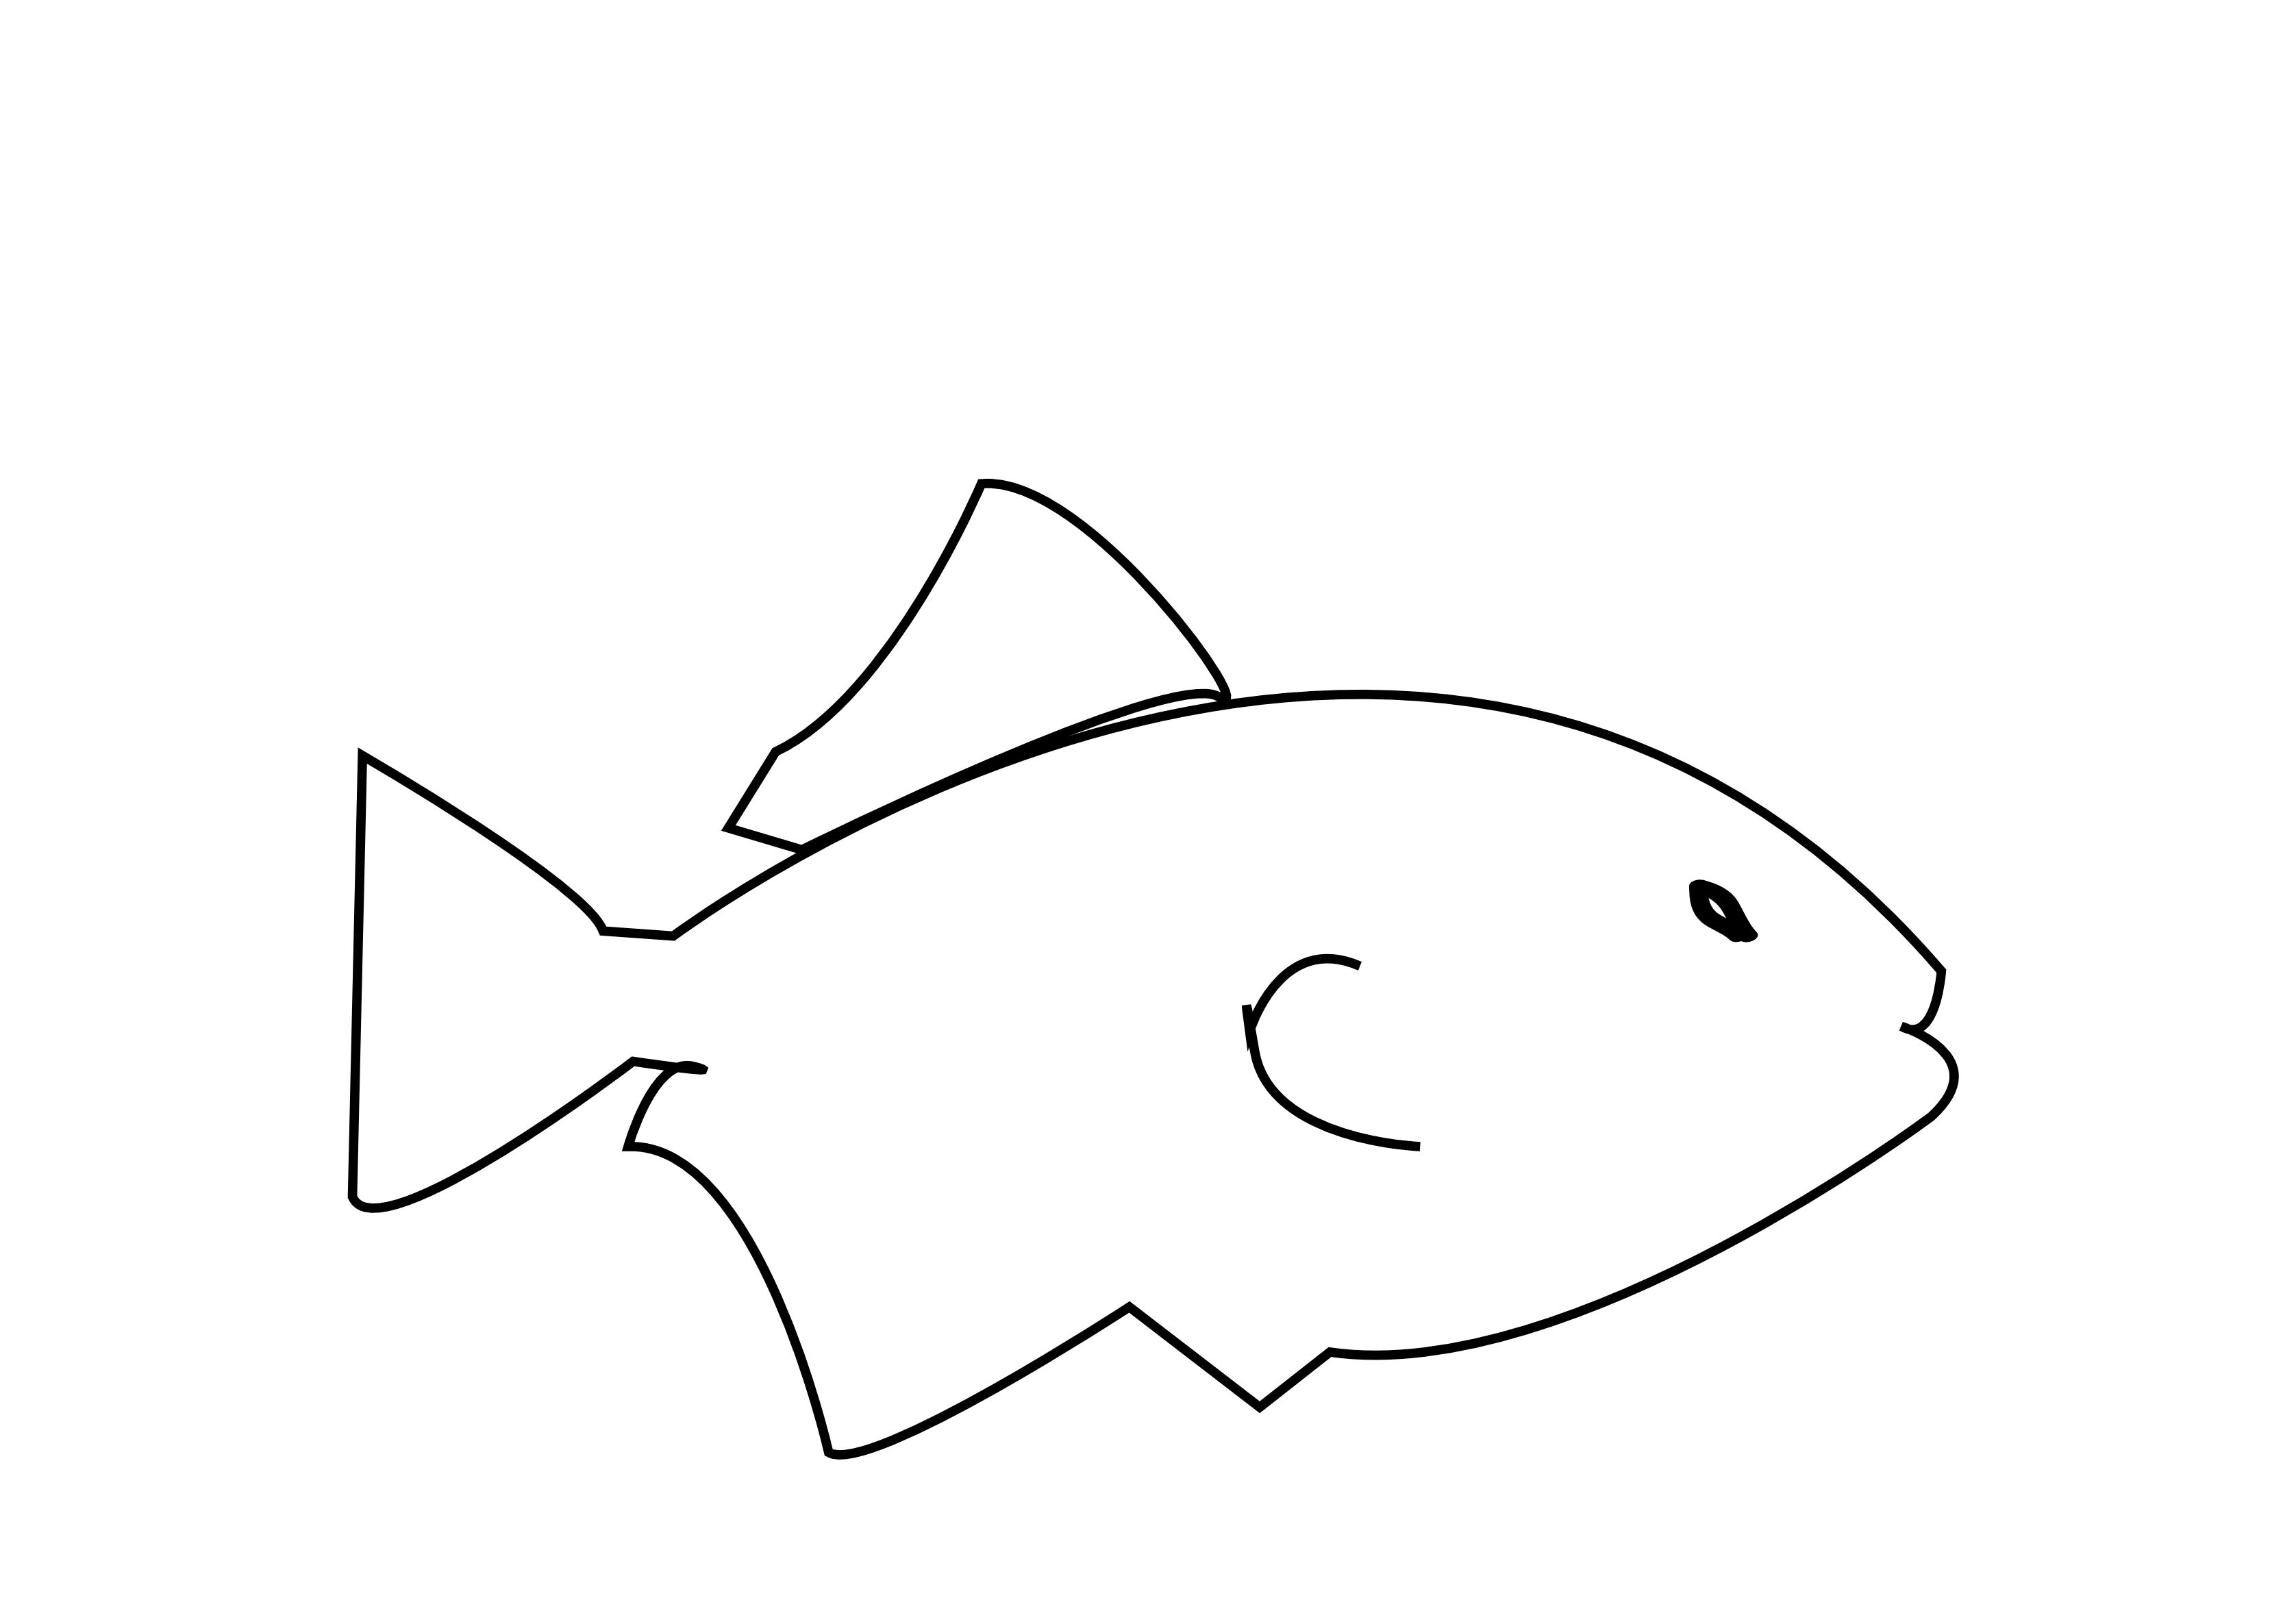 Fish clipart in black and white.  collection of high